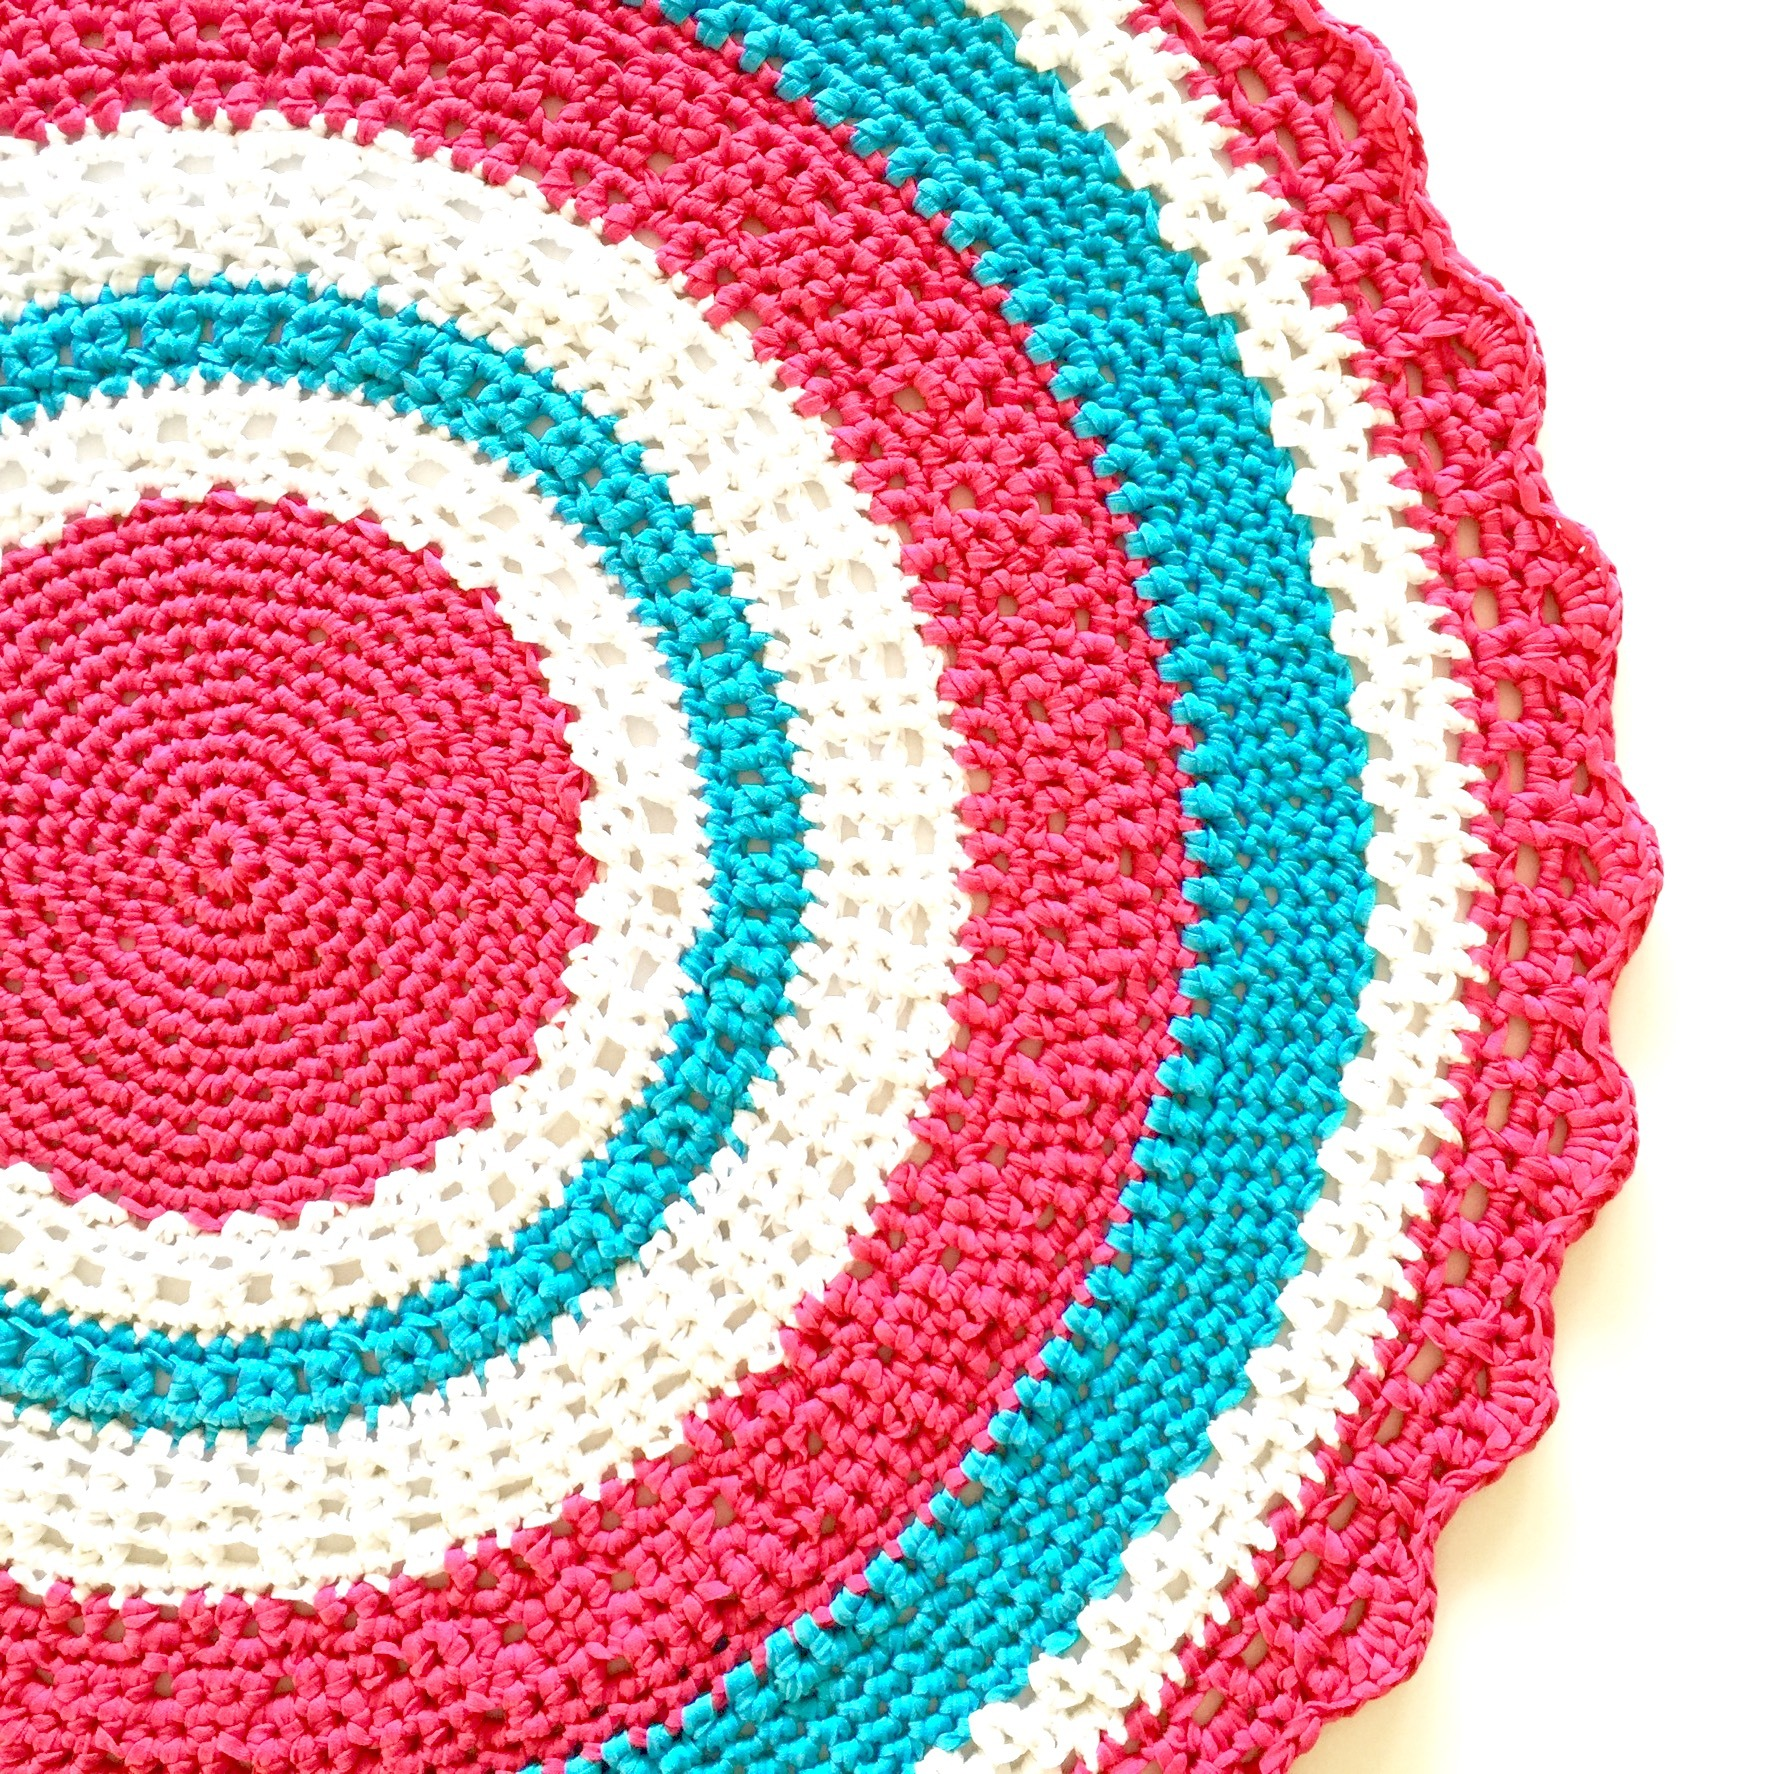 Xl Rag Rug: 'SWEET CAROUSEL' Crochet Floor Rug Crochet Project By